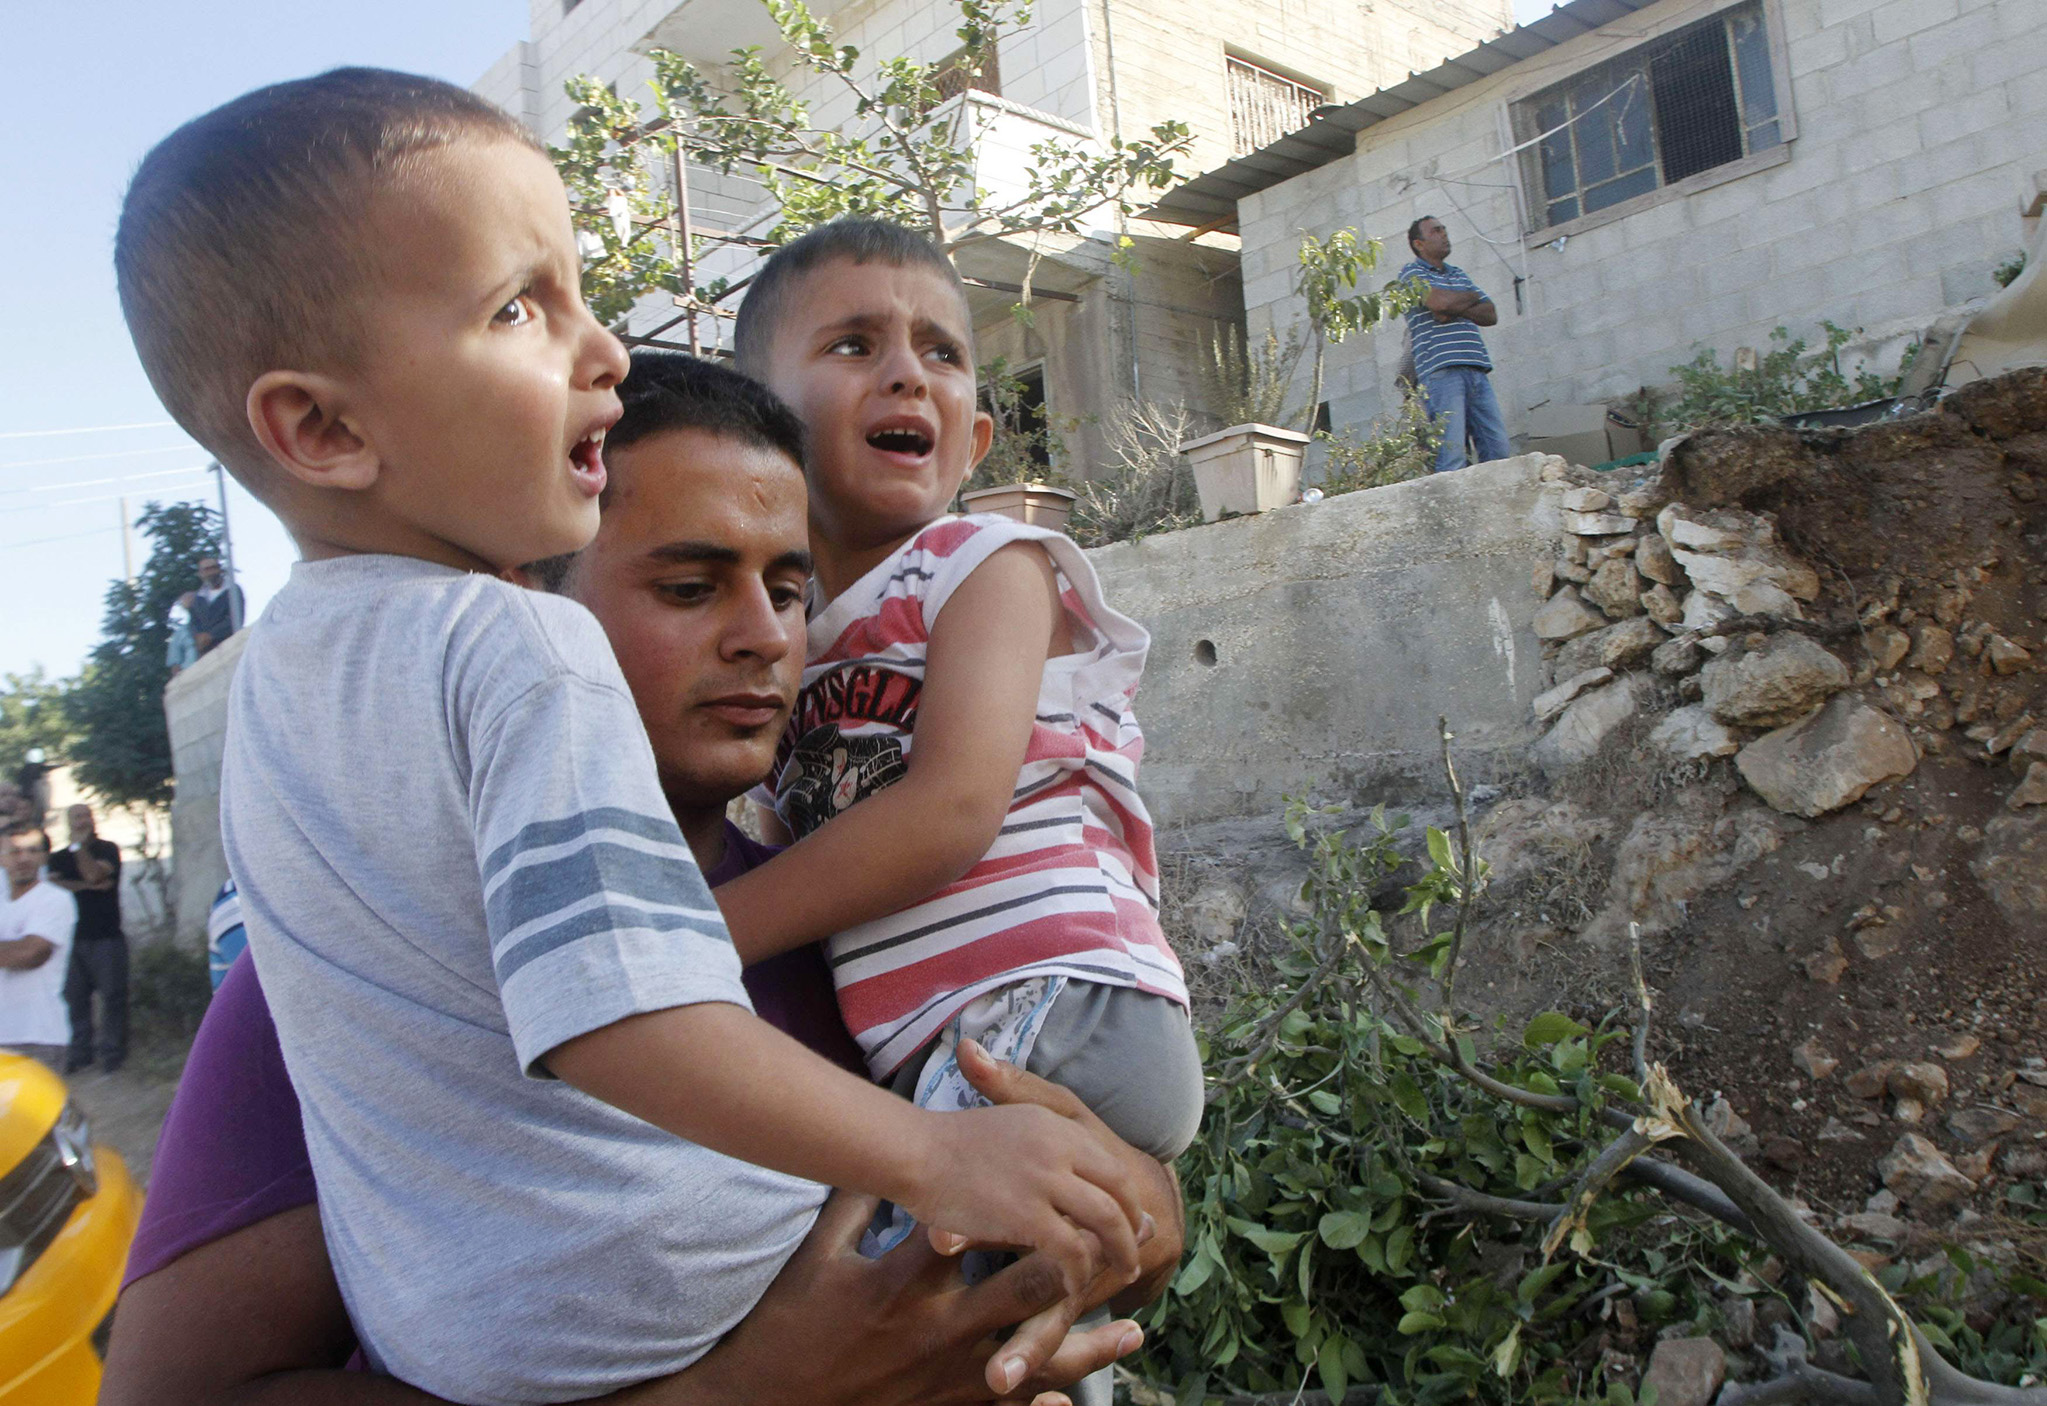 Palestinian boys are evacuated from their family's house, the house of Palestinian man Zakaria al-Aqra, following a raid by Israeli troops near Nablus